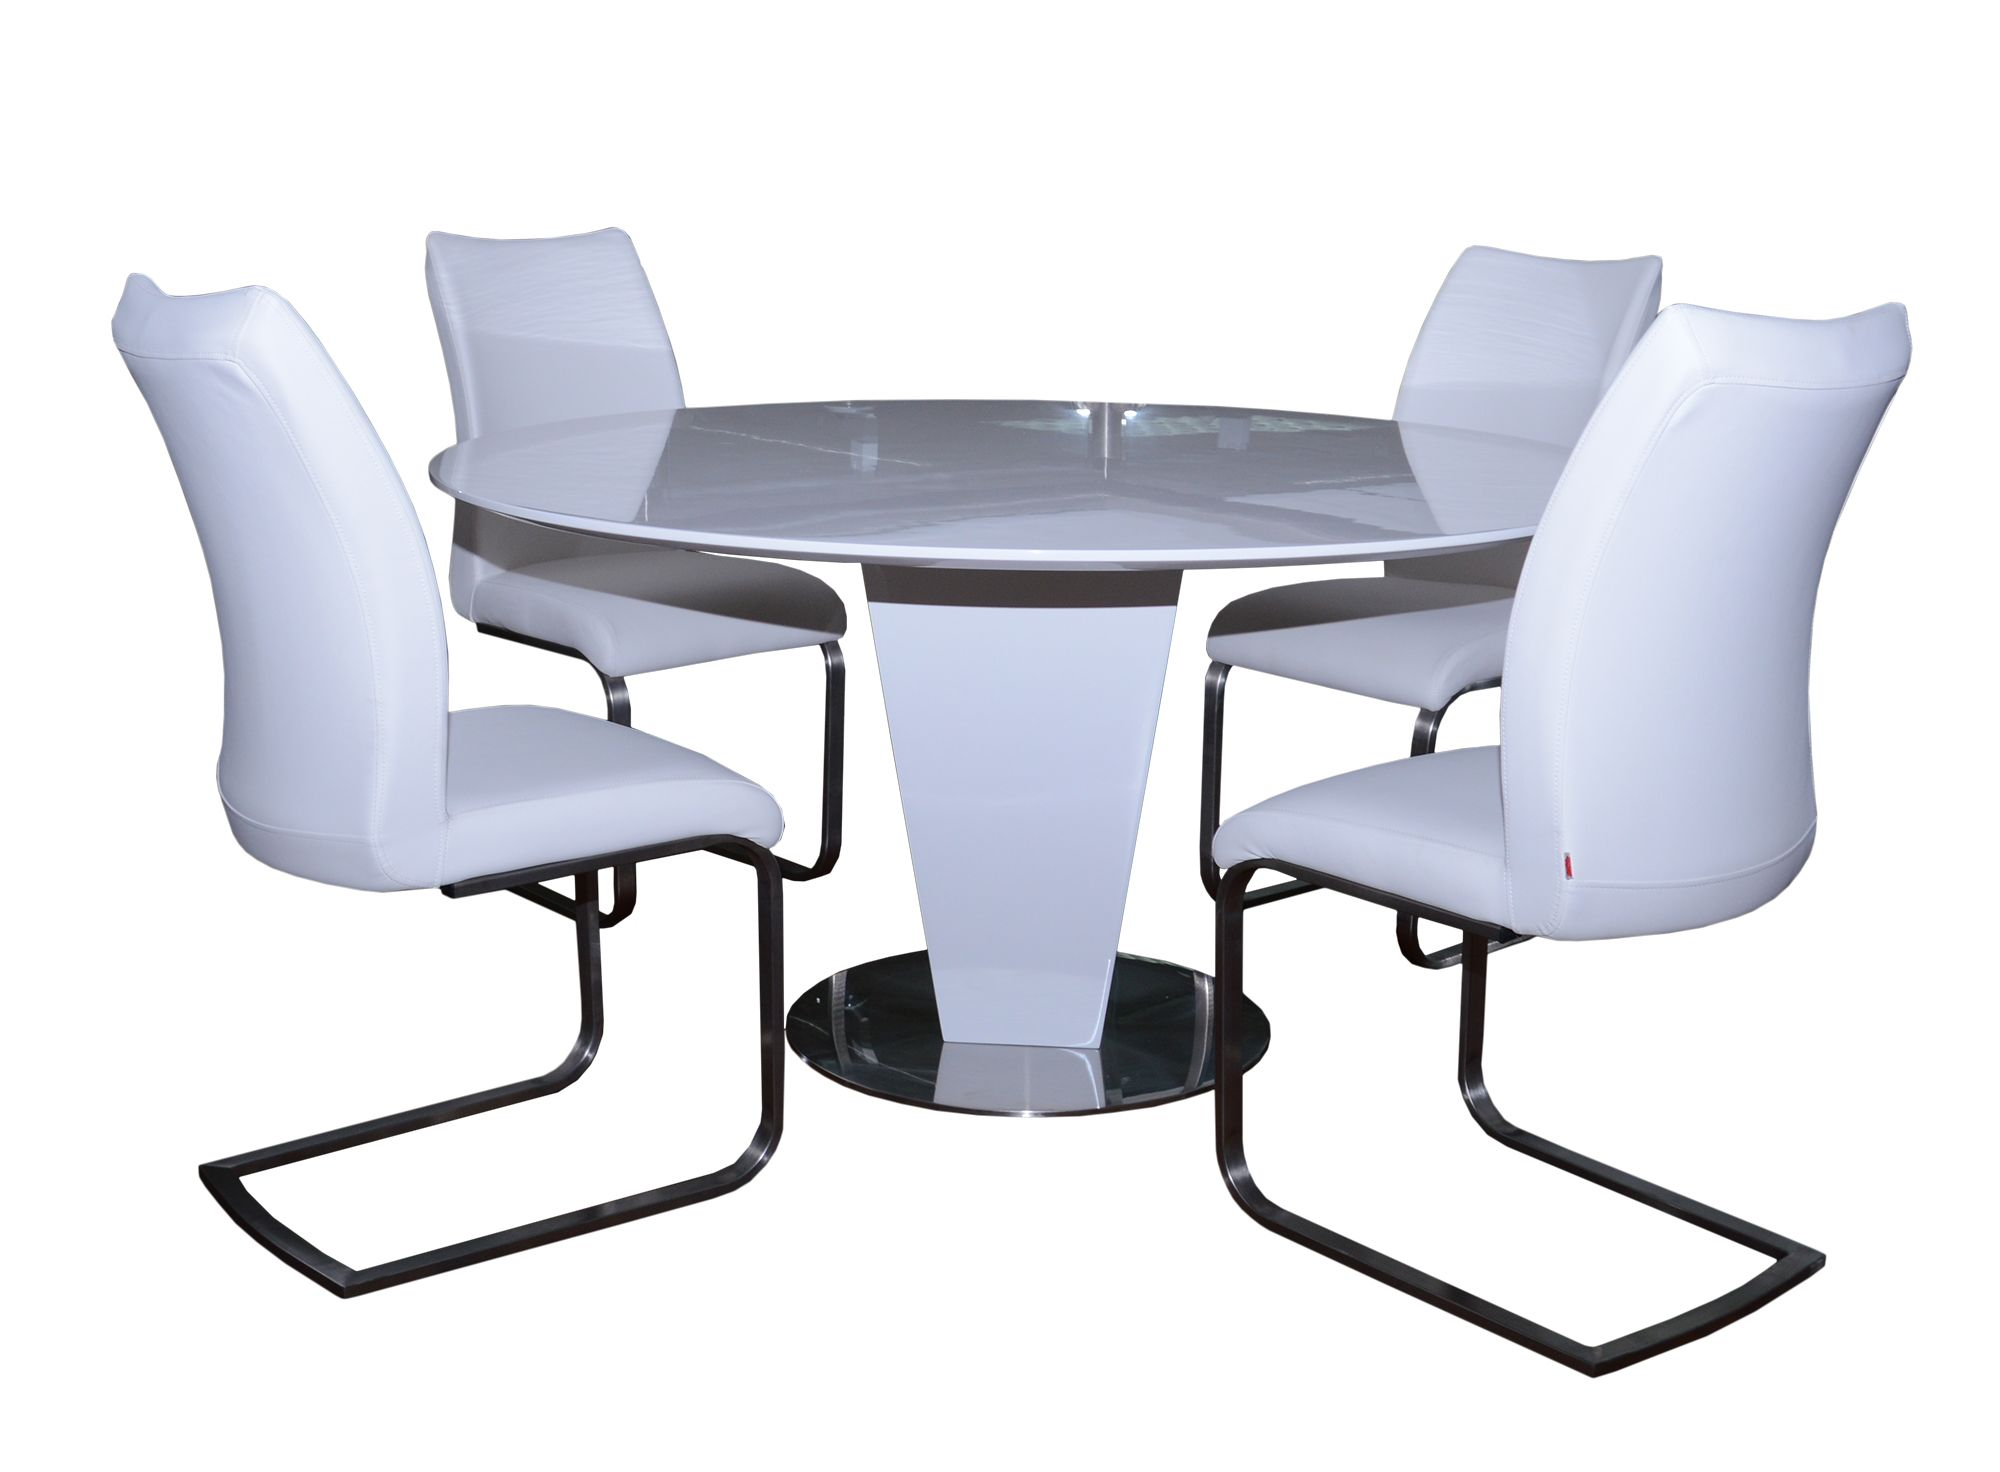 Alessandria 4 6 Person Round Dining Table 4 White Paderna Dining Chairs Dining Table Chair Sets Meubles